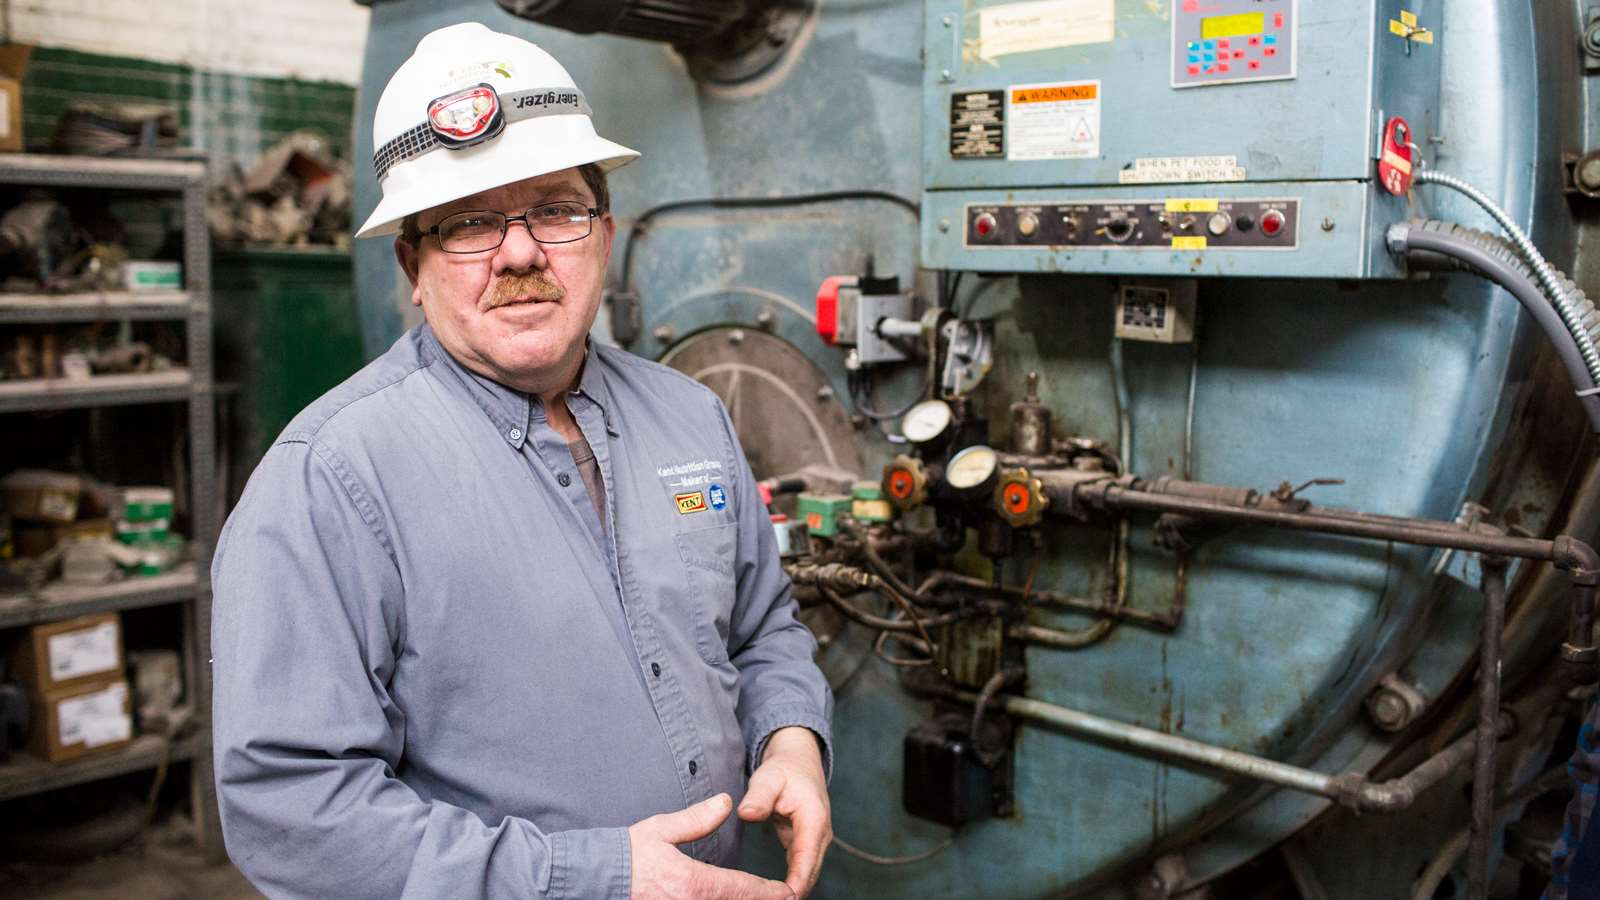 Blue Seal Maintenance Manager Dan Turcotte in front of boiler controls that have saved the company $53,800 per year.